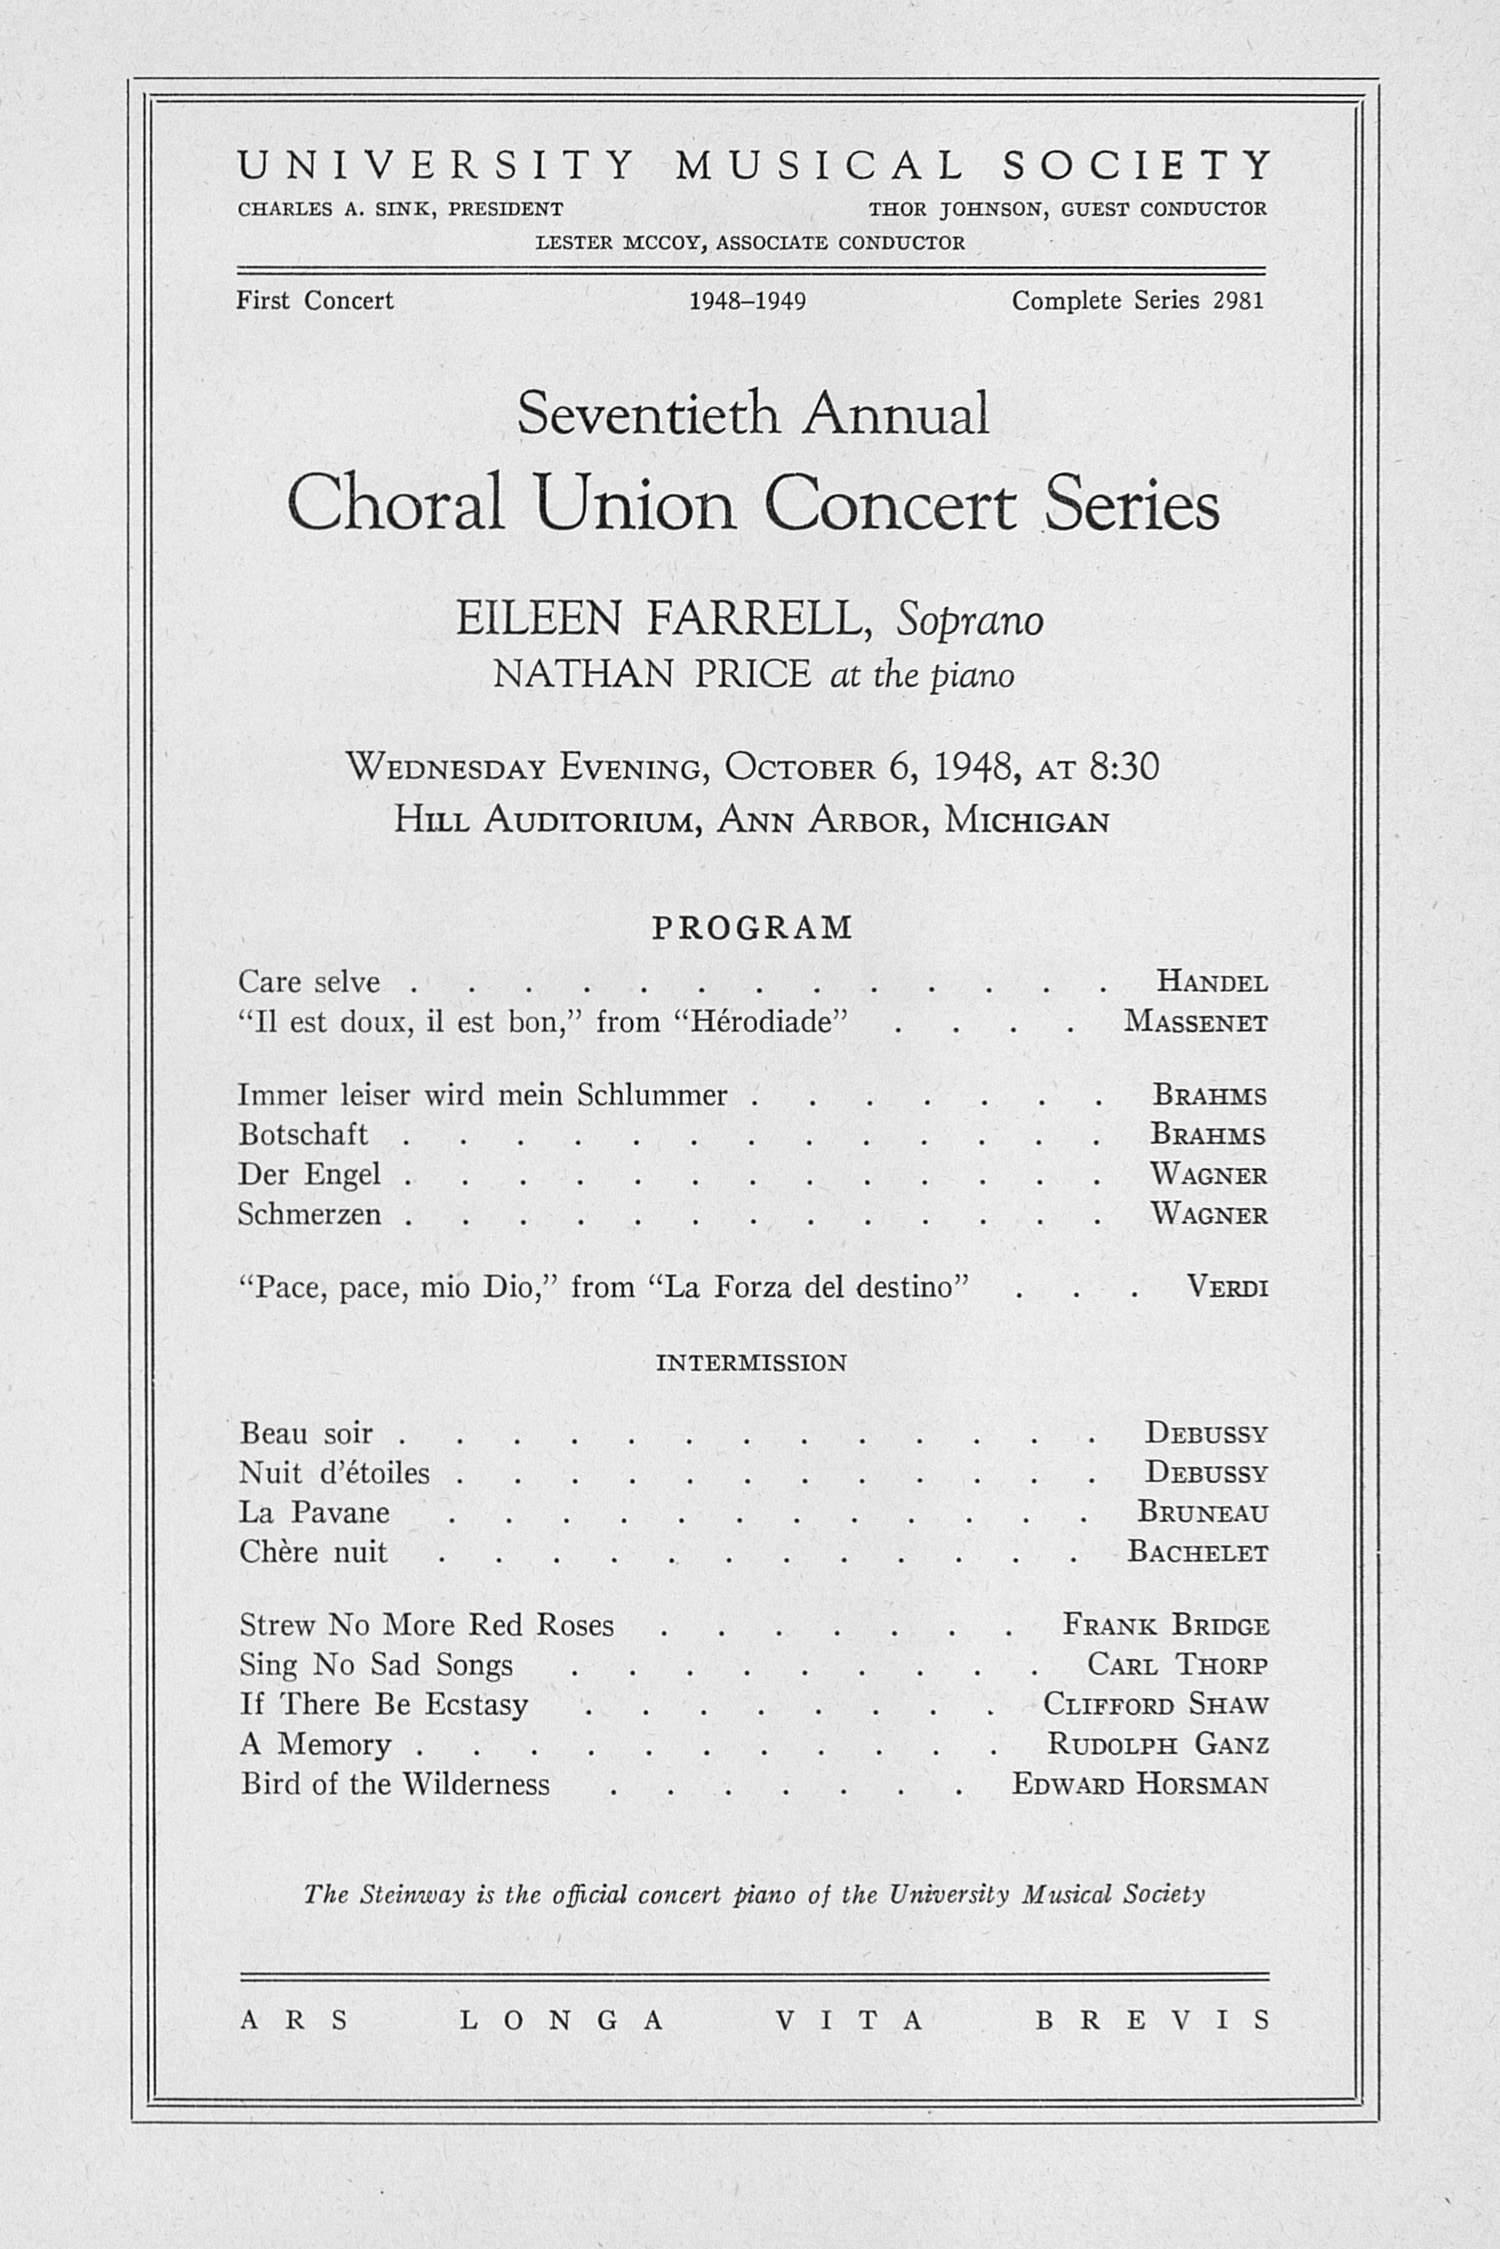 UMS Concert Program, October 6, 1948: Seventieth Annual Choral Union Concert Series -- Eileen Farrell image